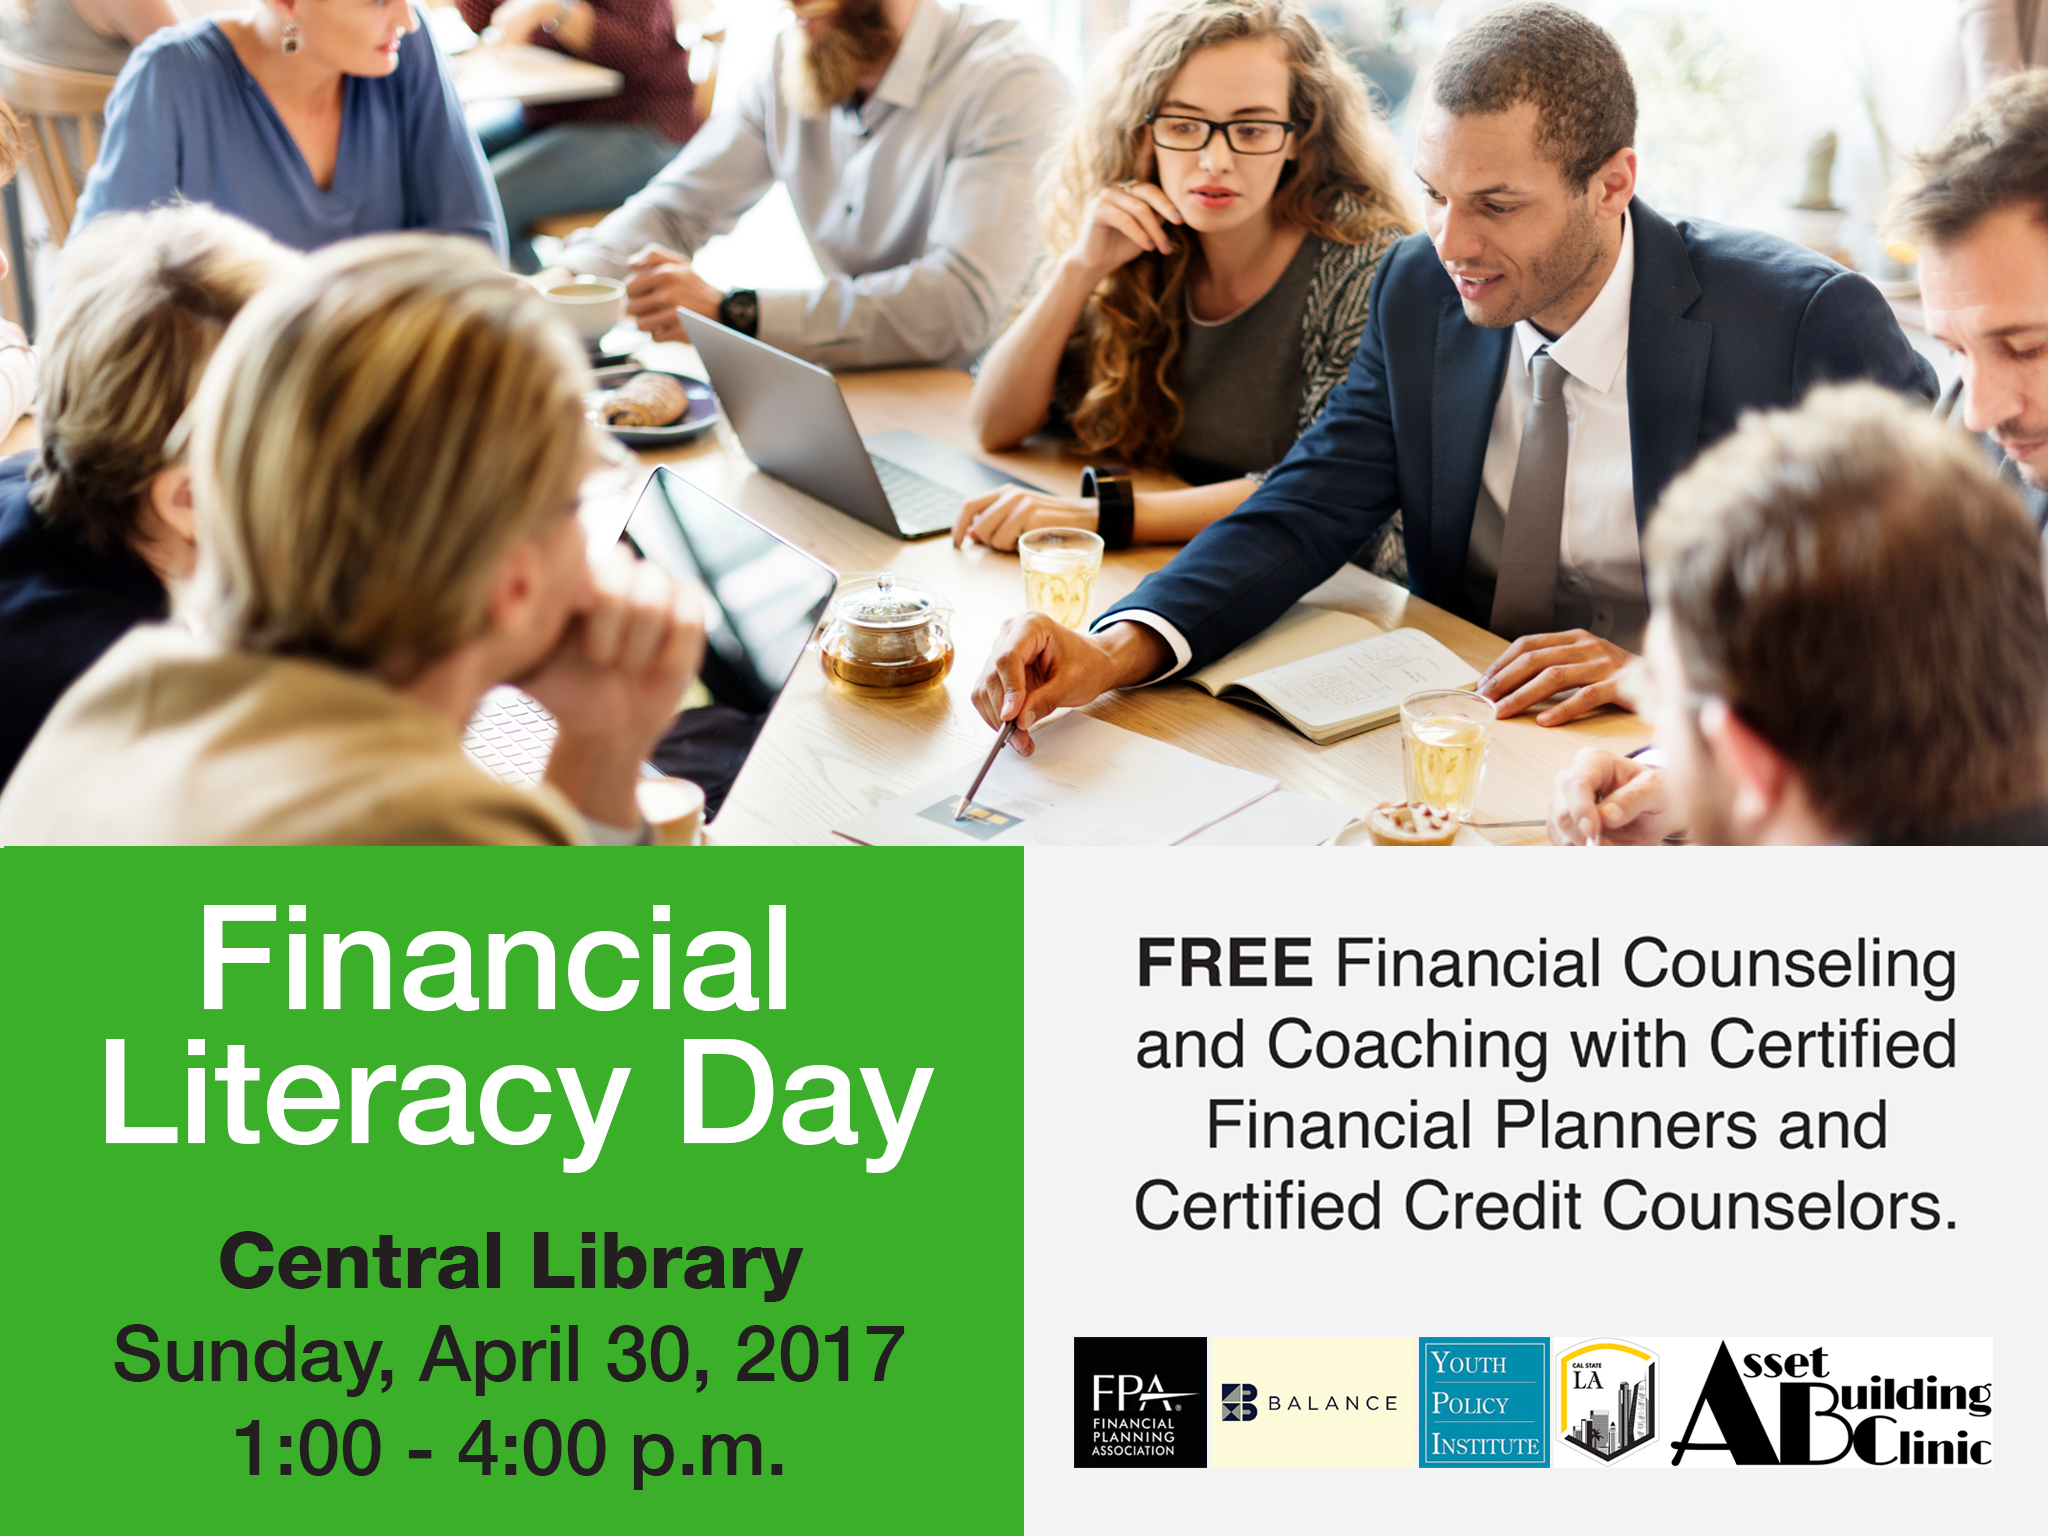 Financial Literacy Day at central Library